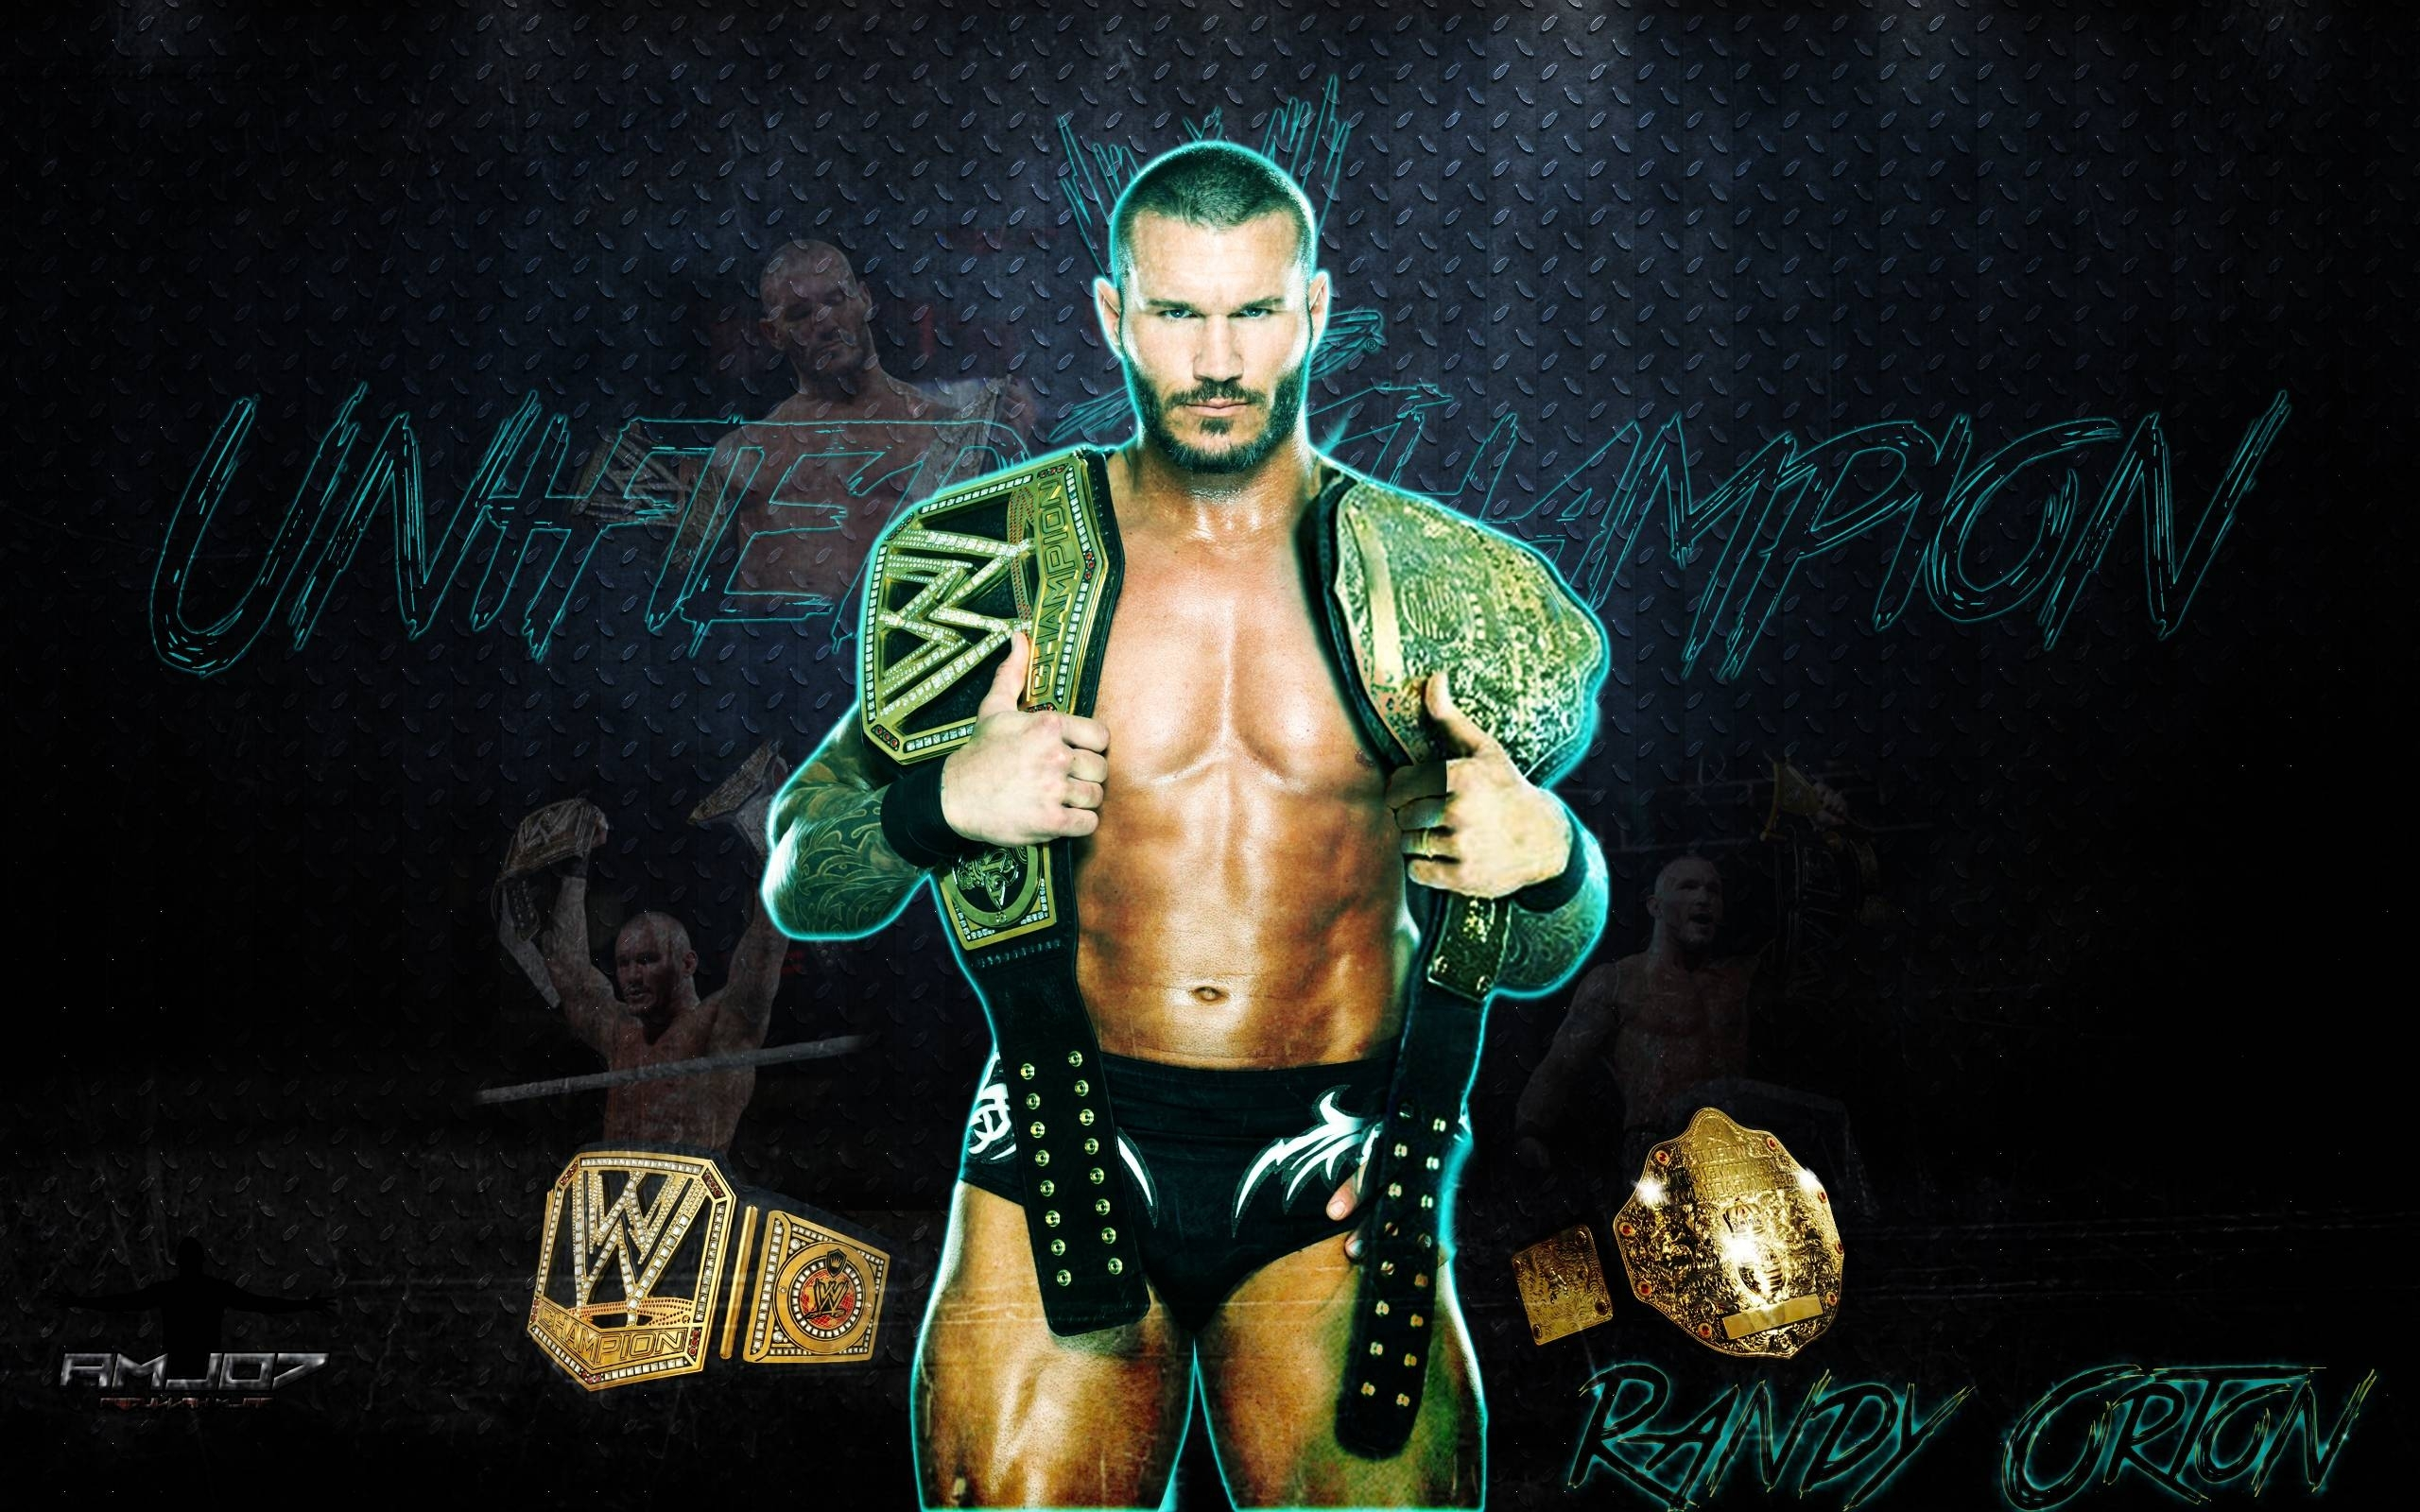 randy orton wallpapers - wallpaper cave